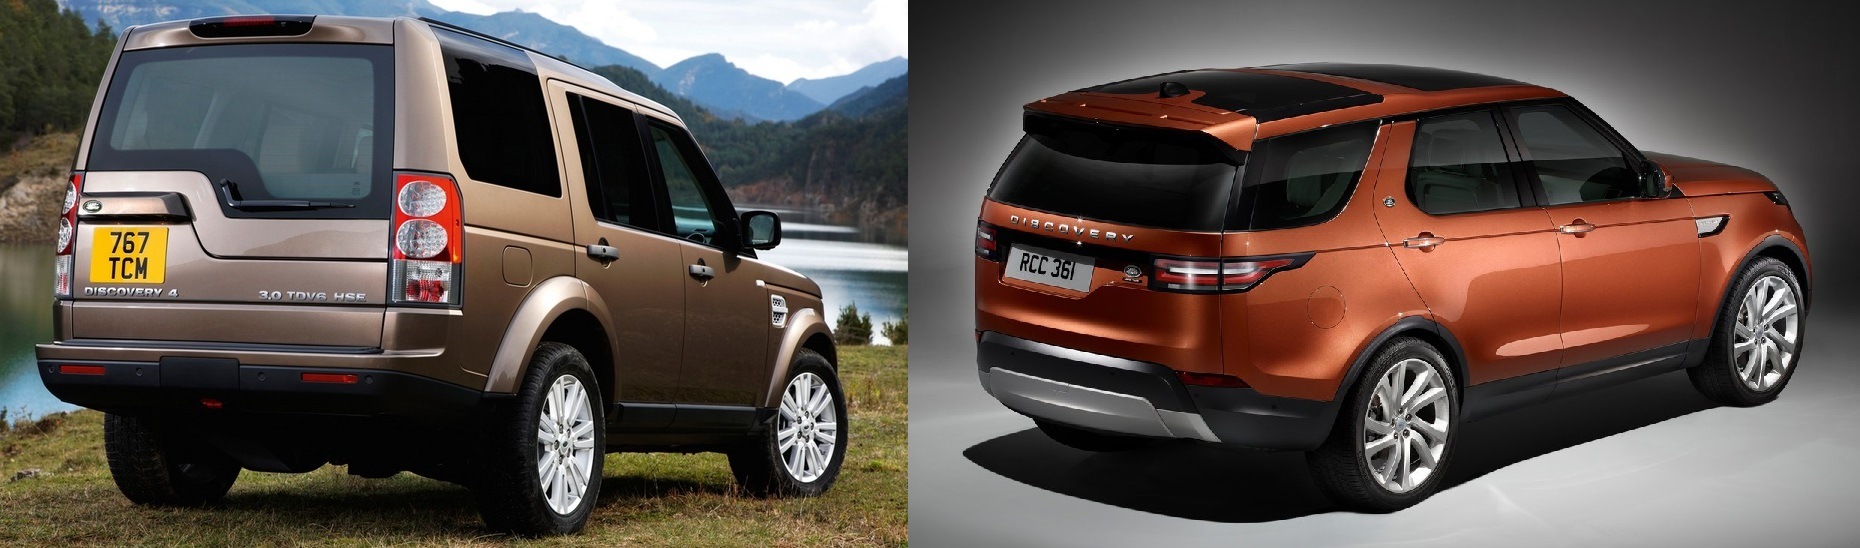 land_rover-discovery-2017-rr-x2